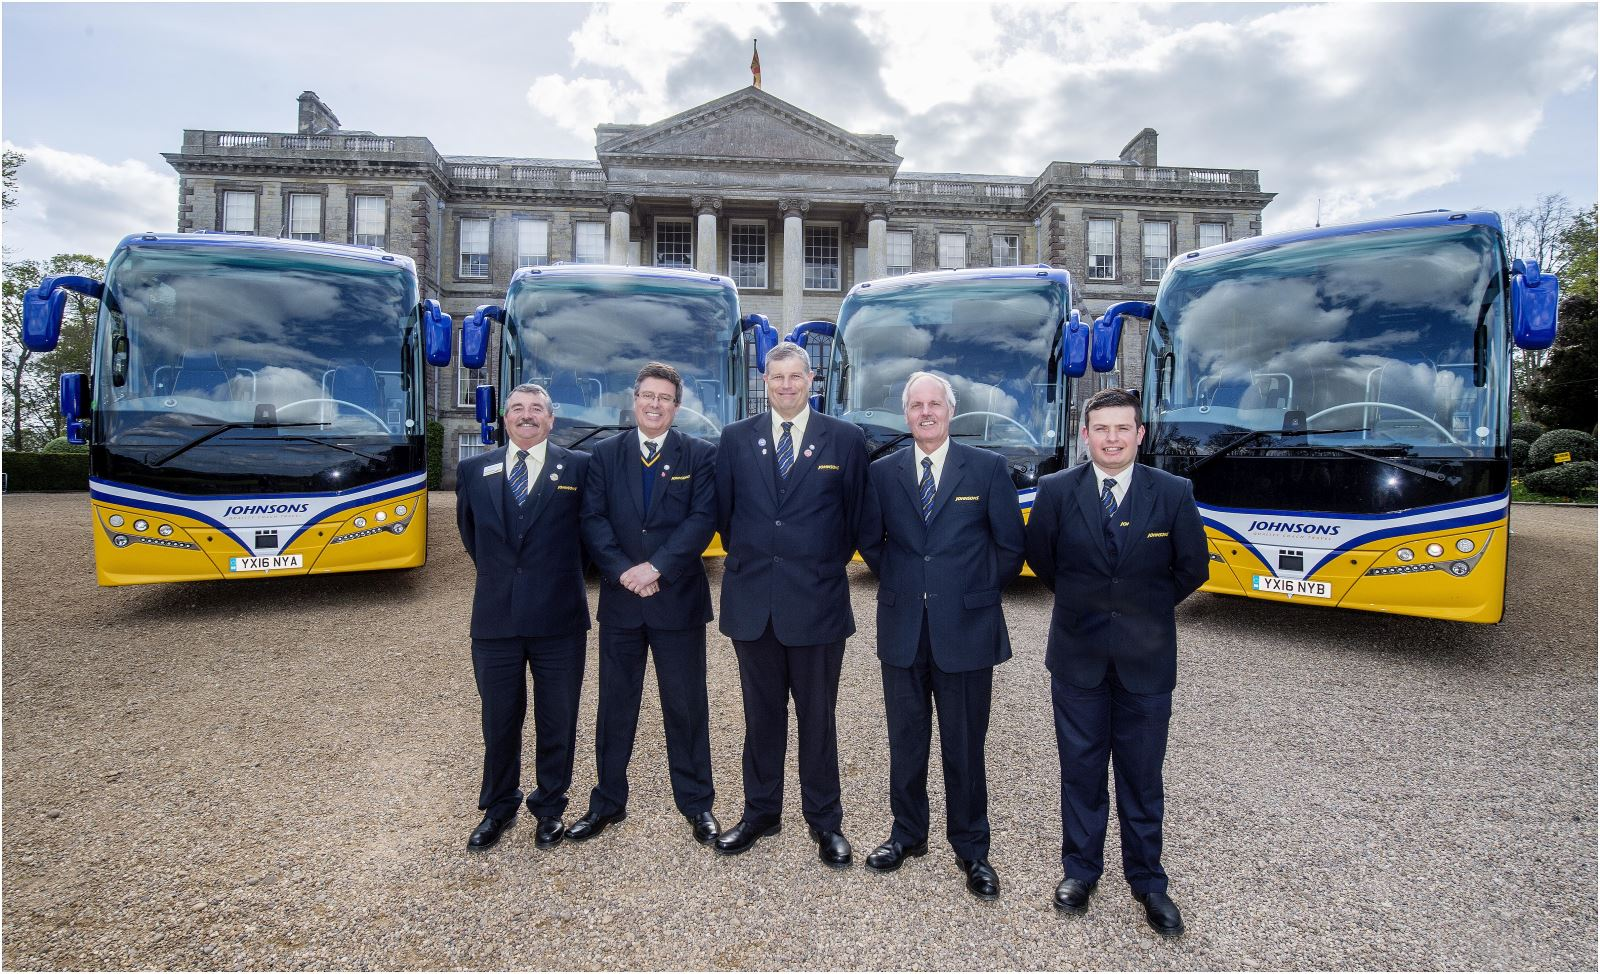 Coach hire for incoming groups to the UK